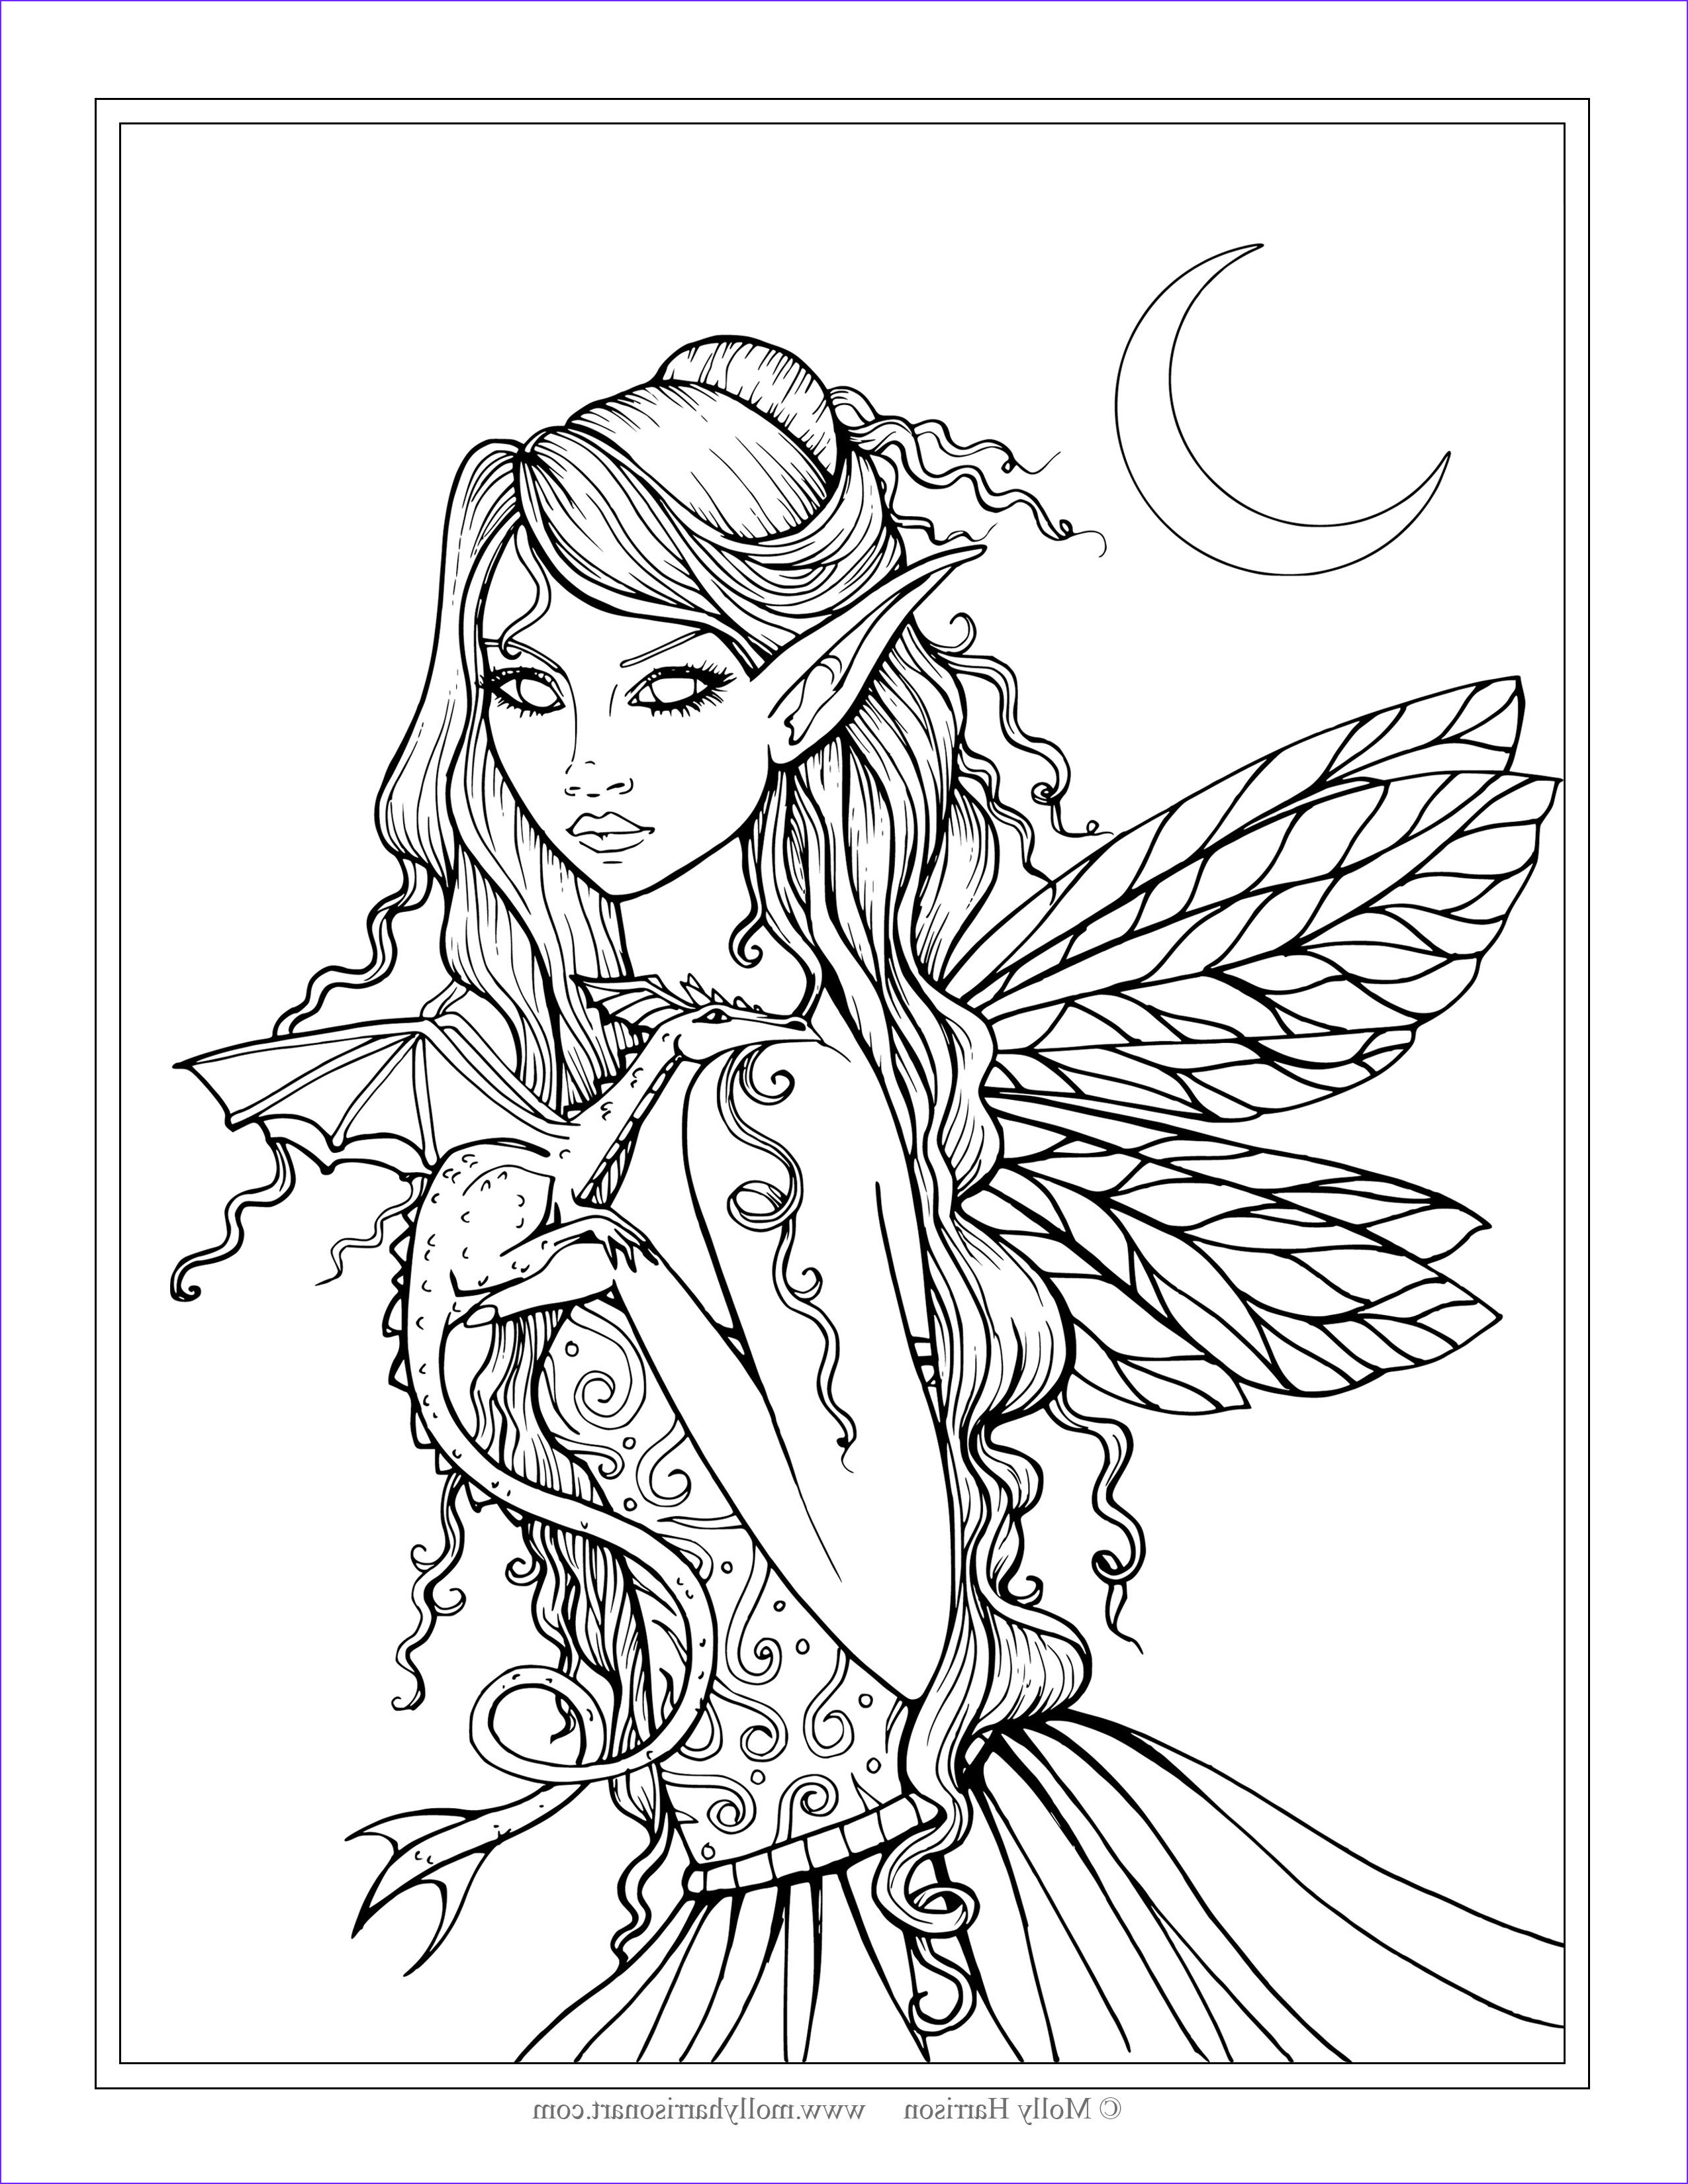 Fantasy Coloring Books Inspirational Gallery Free Fairy and Dragon Coloring Page by Molly Harrison